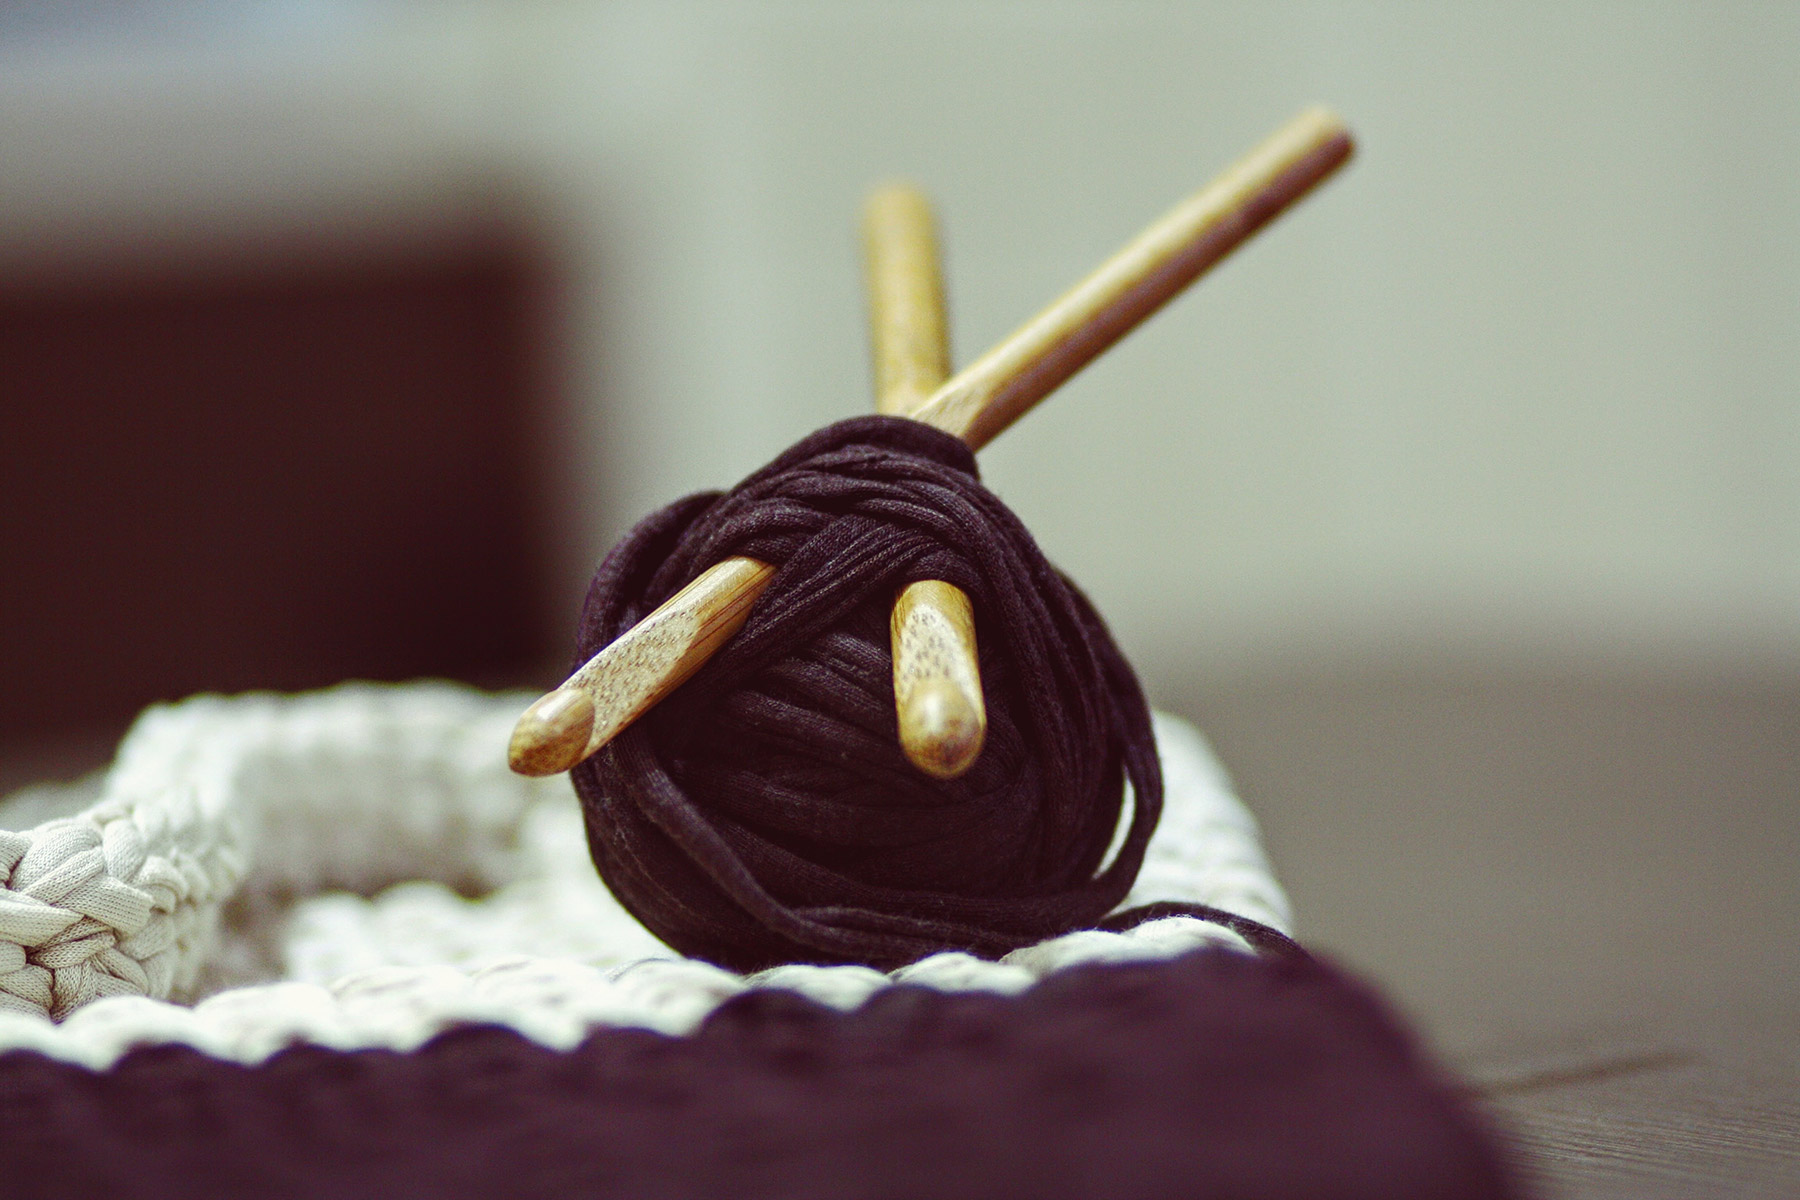 A DIY Knitting Kit Made For You